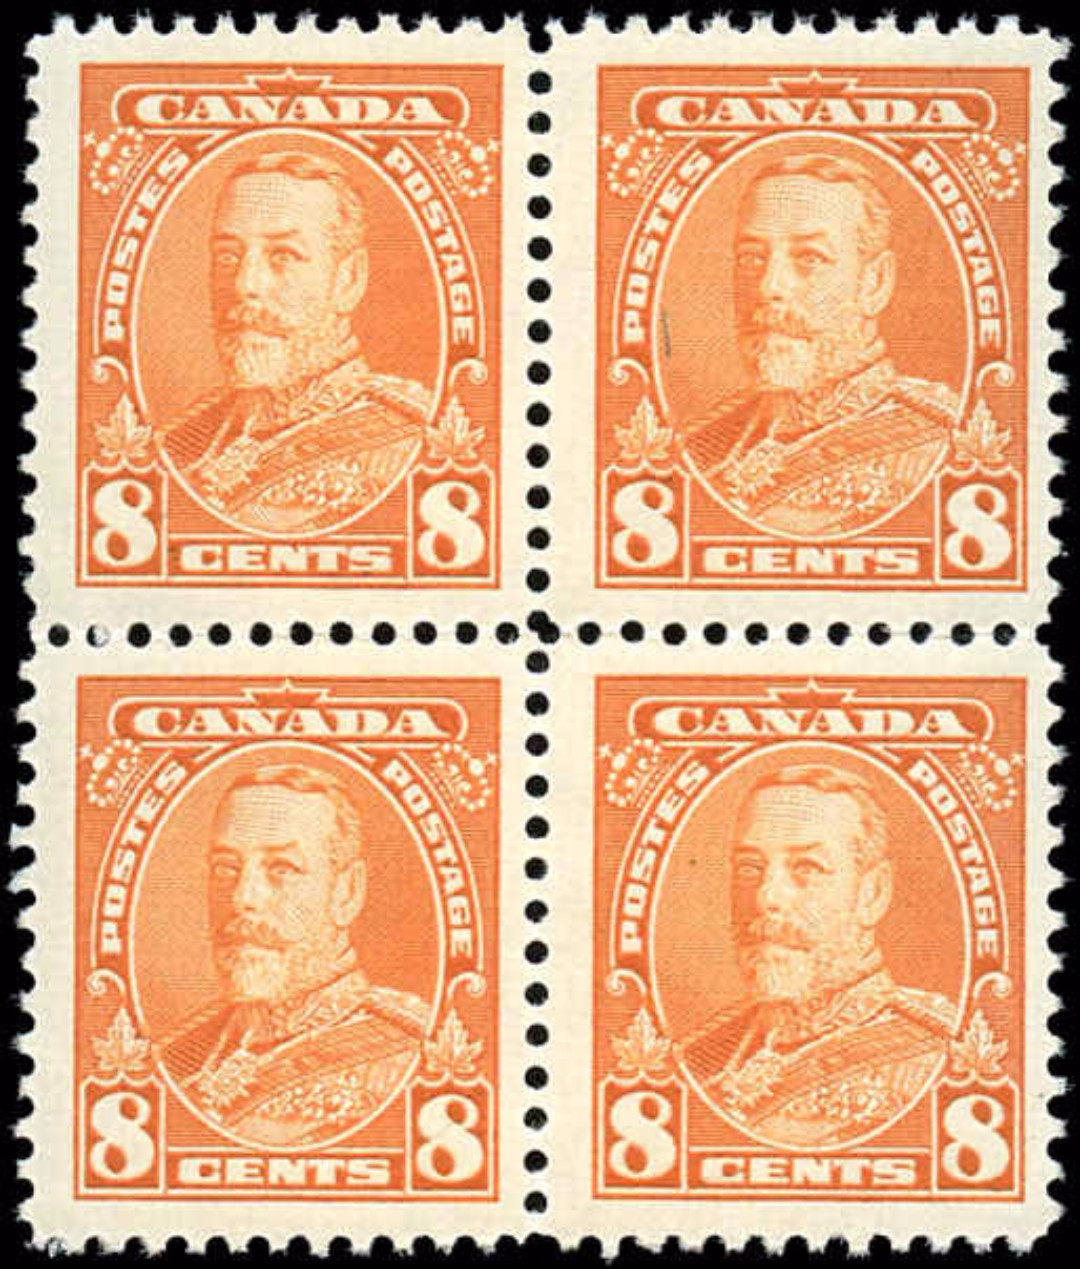 Canada #222, Pictorial Issue, F-VF, MNH